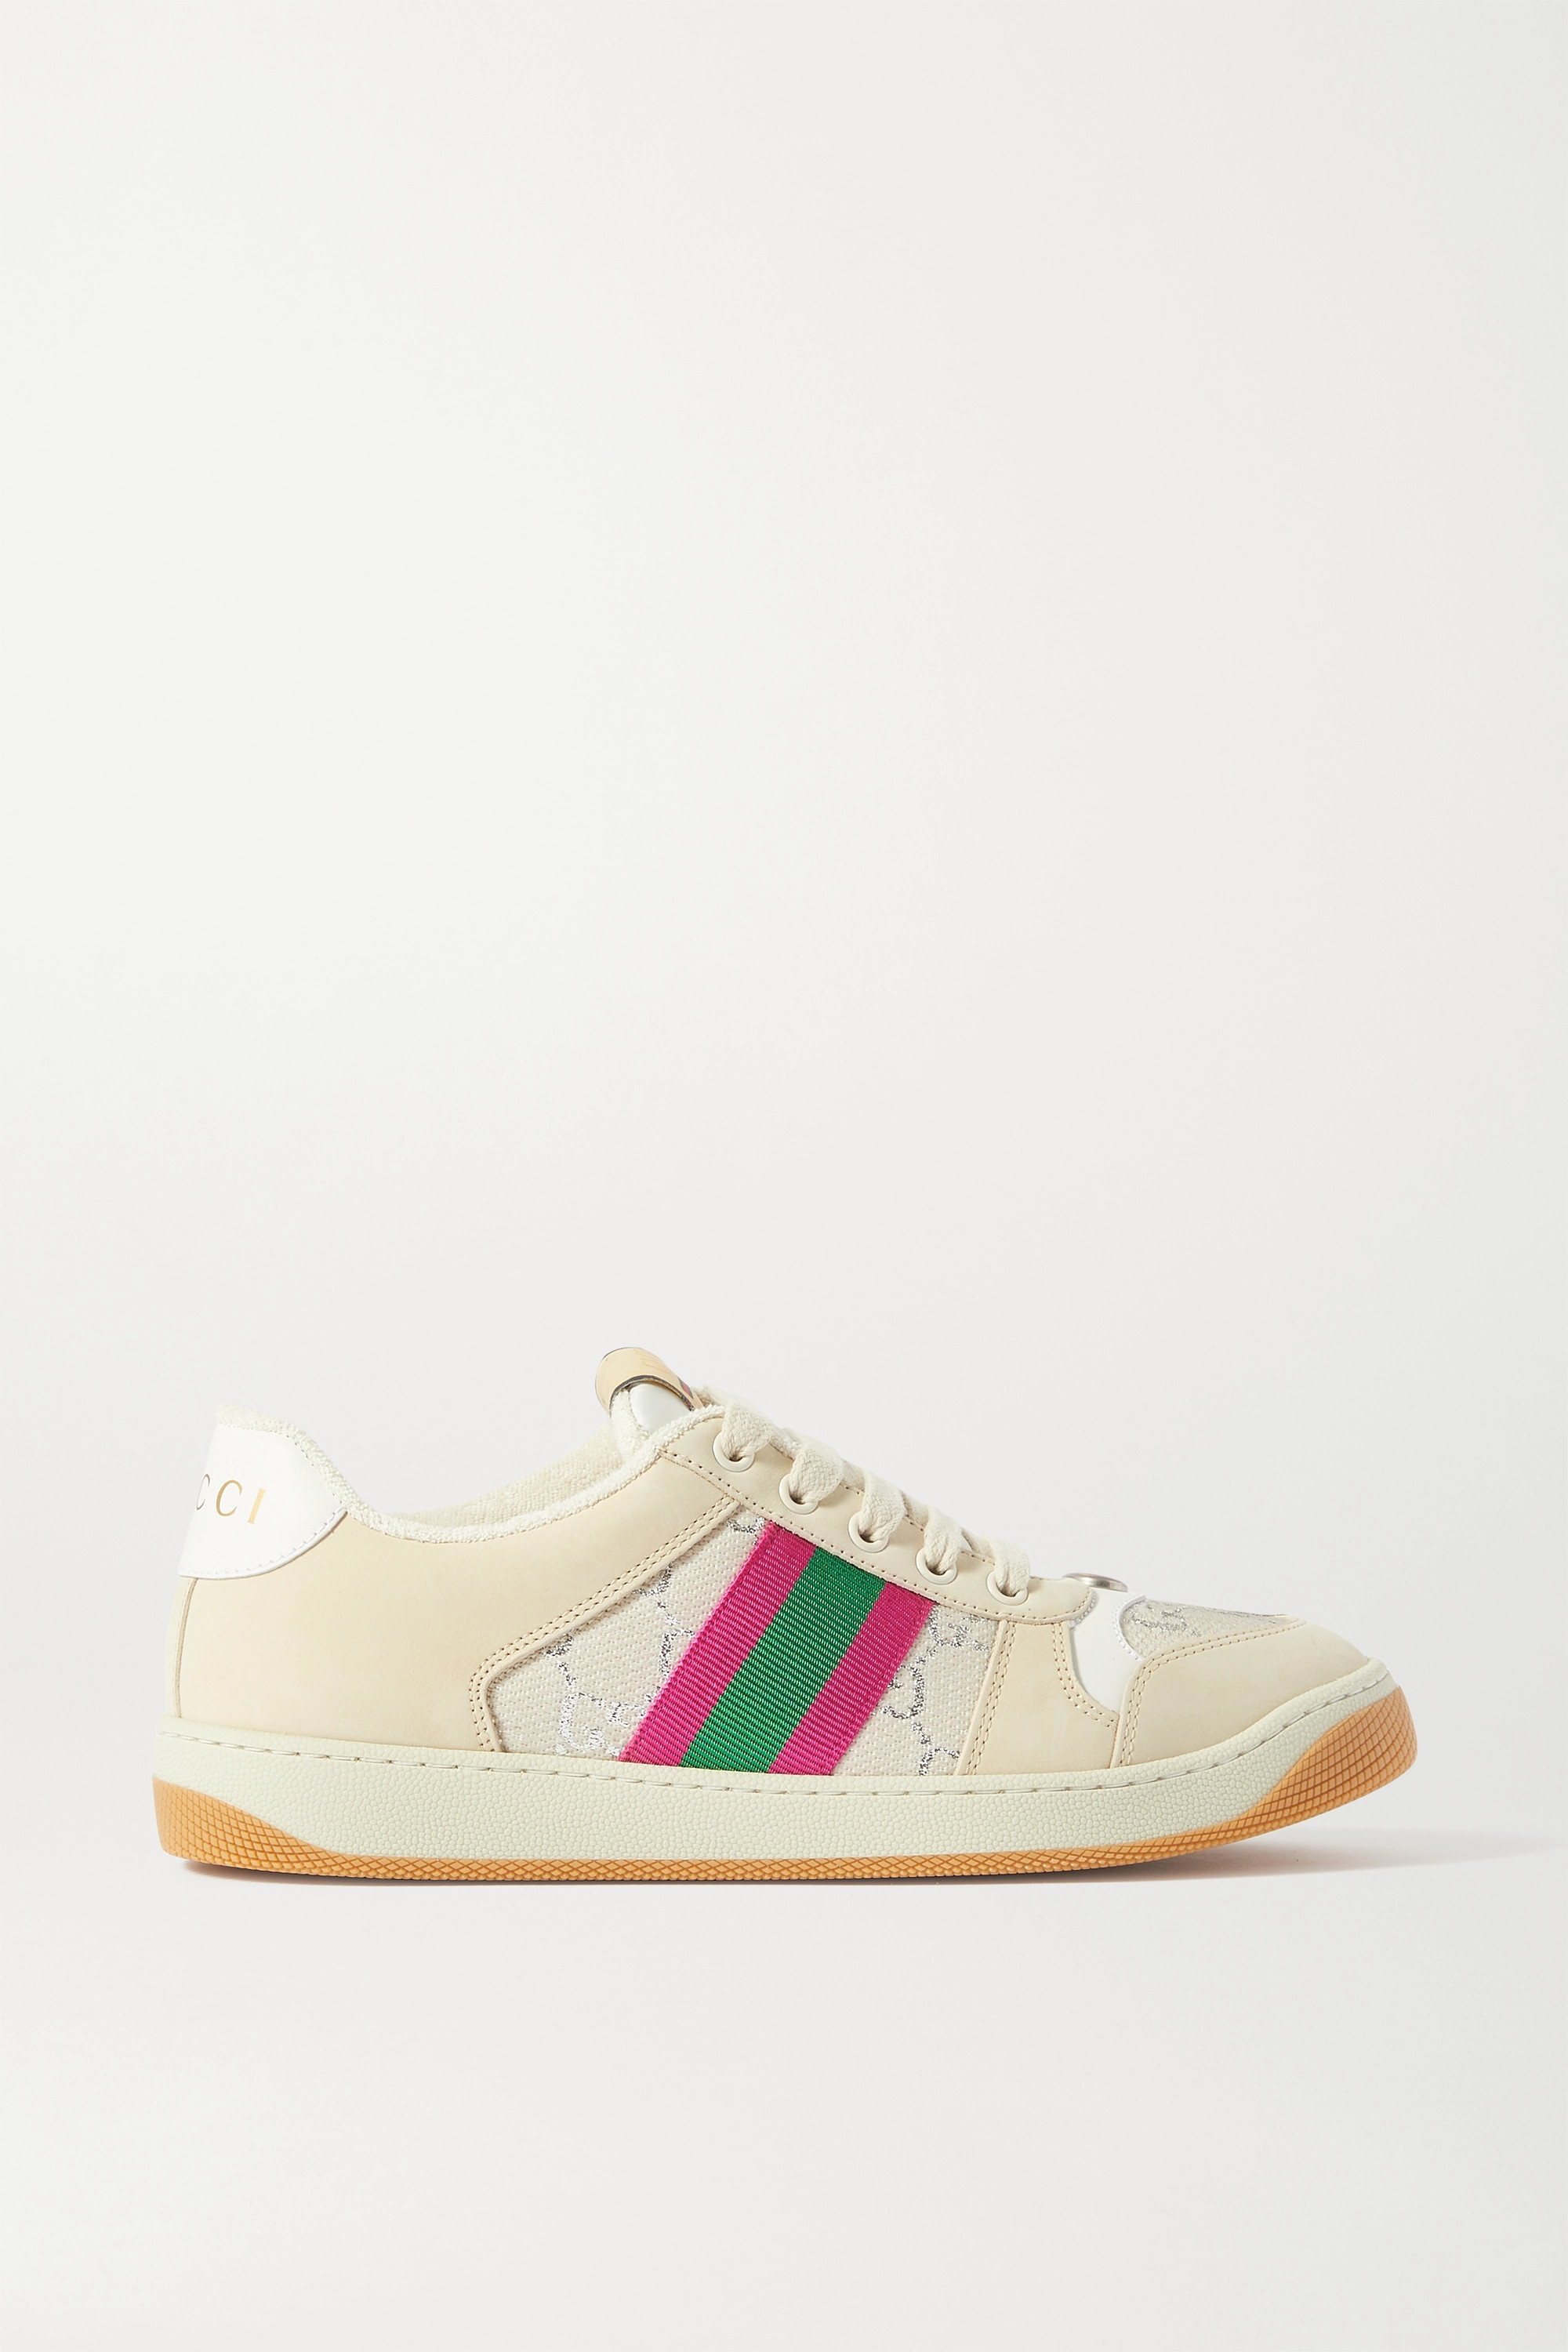 Gucci Screener suede and canvas-trimmed printed leather sneakers